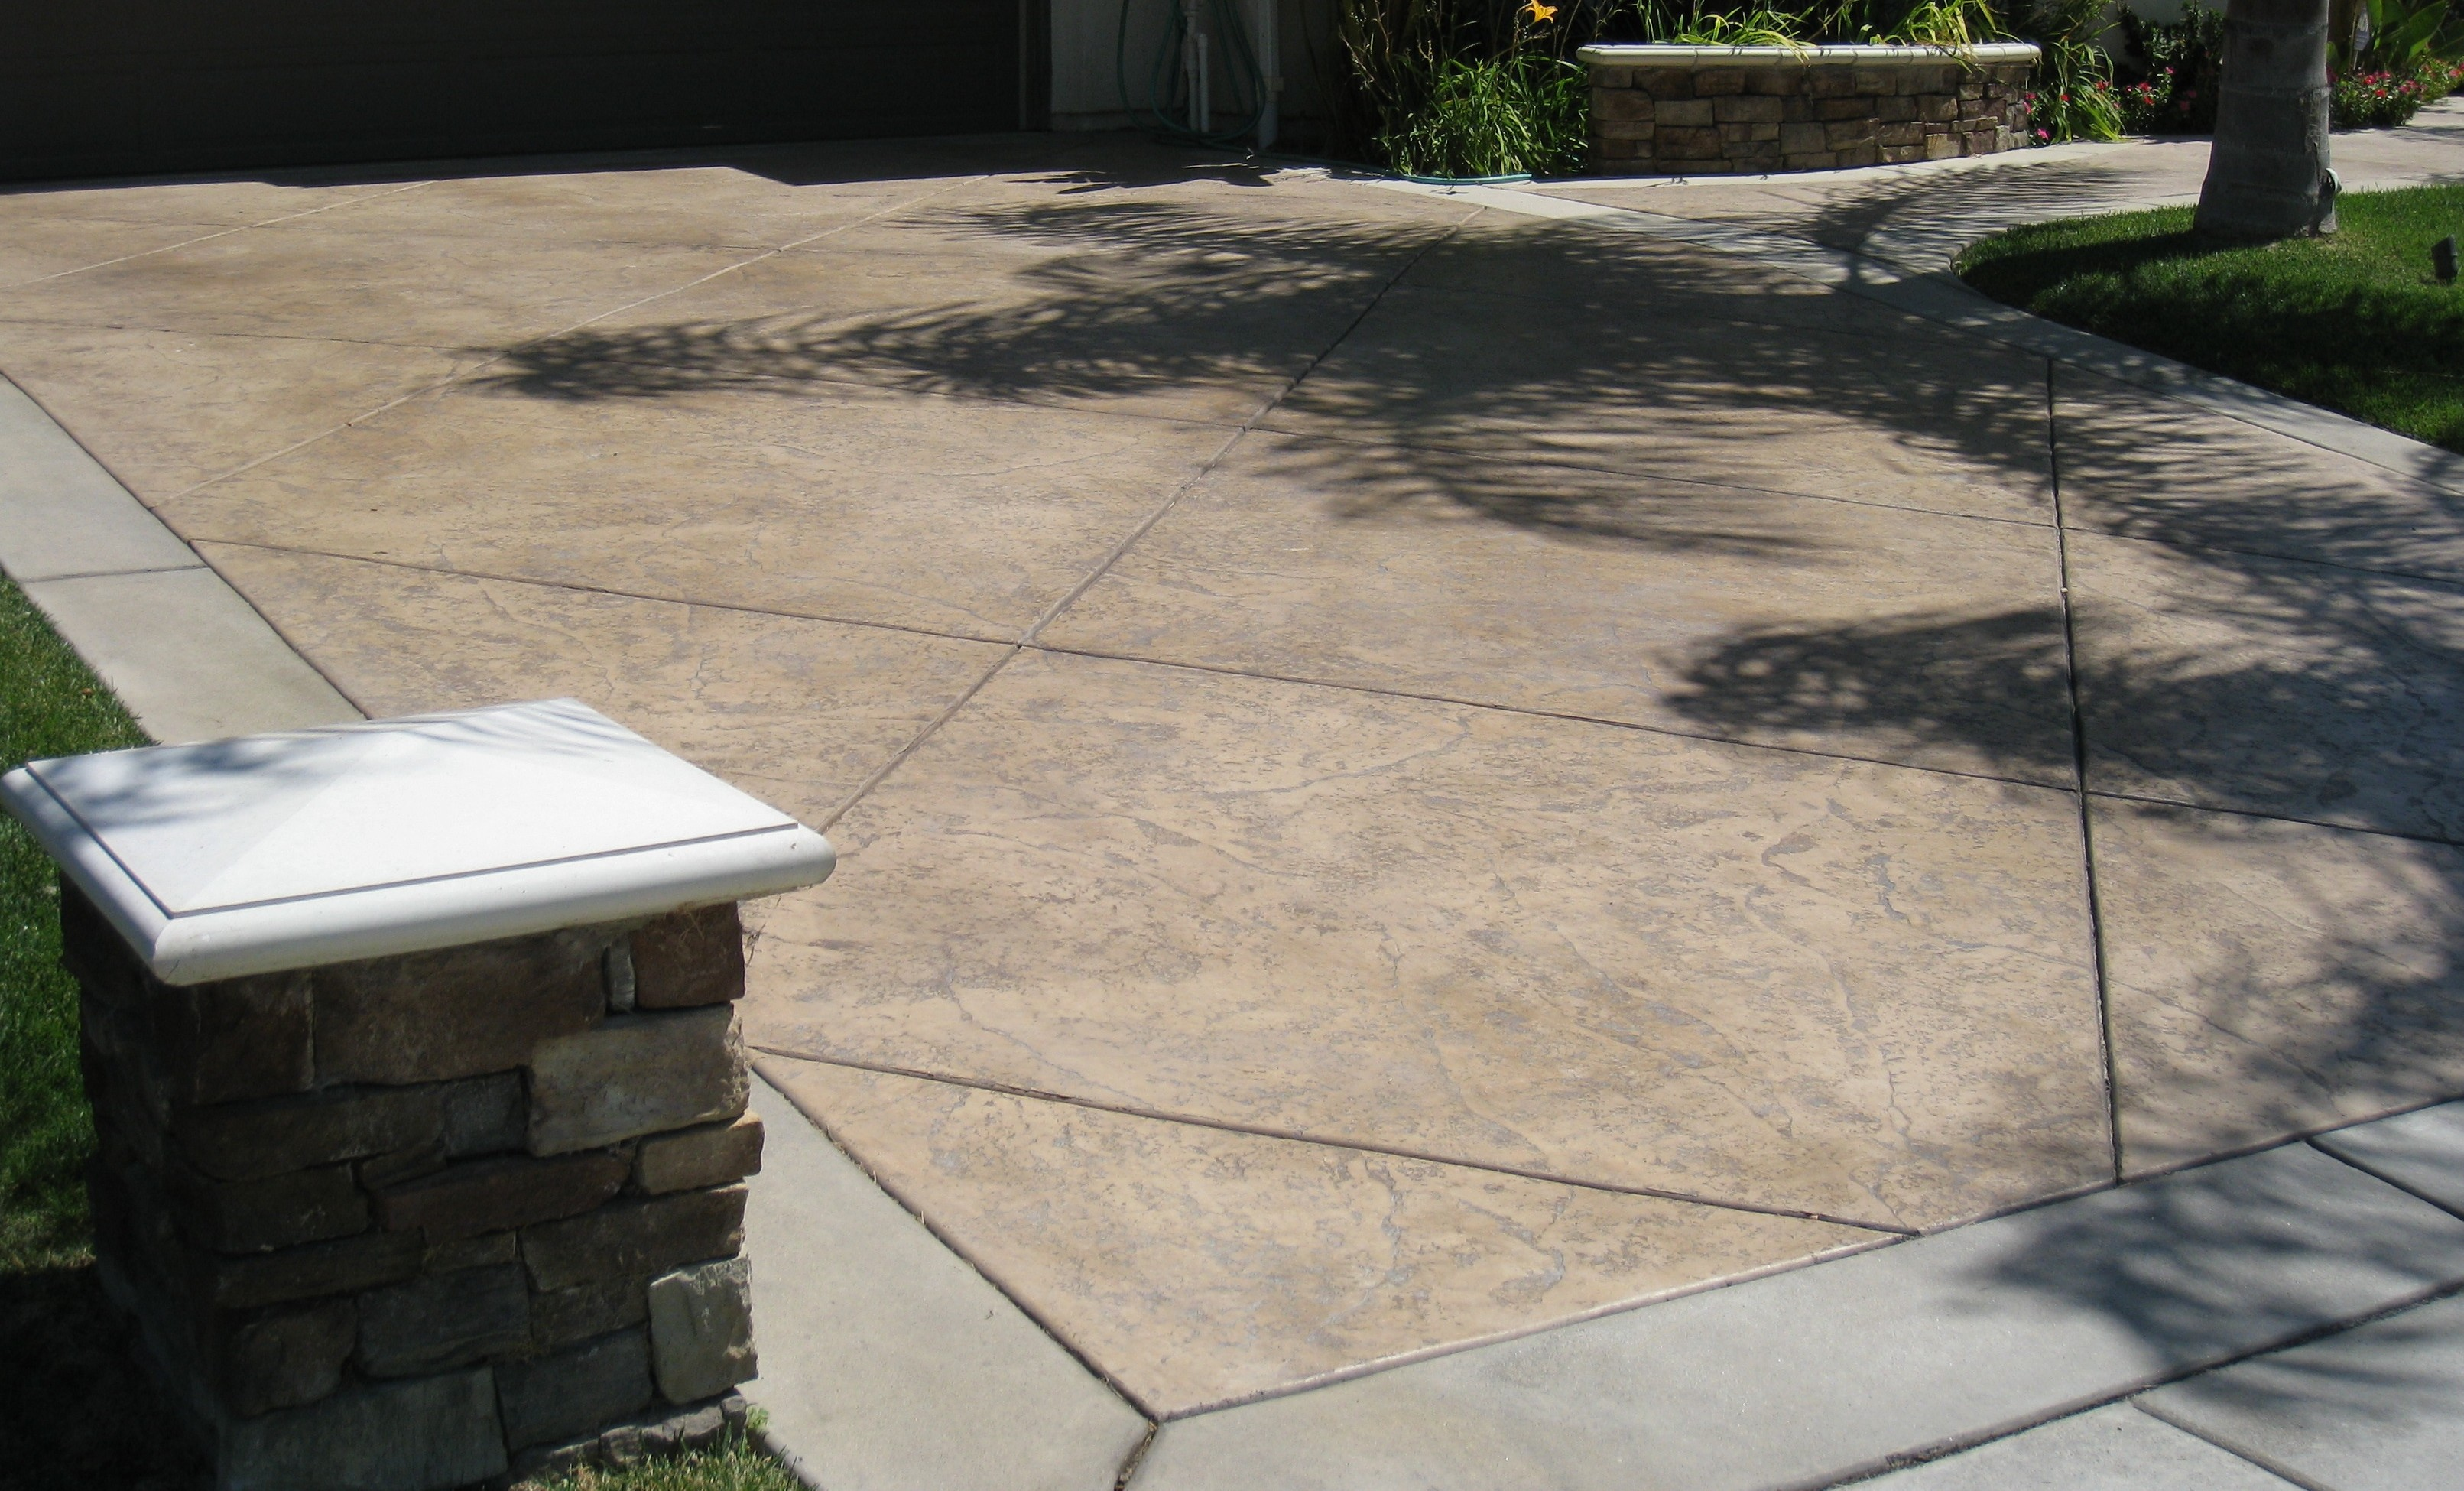 Charmant Stamped Concrete Patio Stamped Concrete Pool Deck Stamped Concrete Walkway  Stamped Concrete Driveway